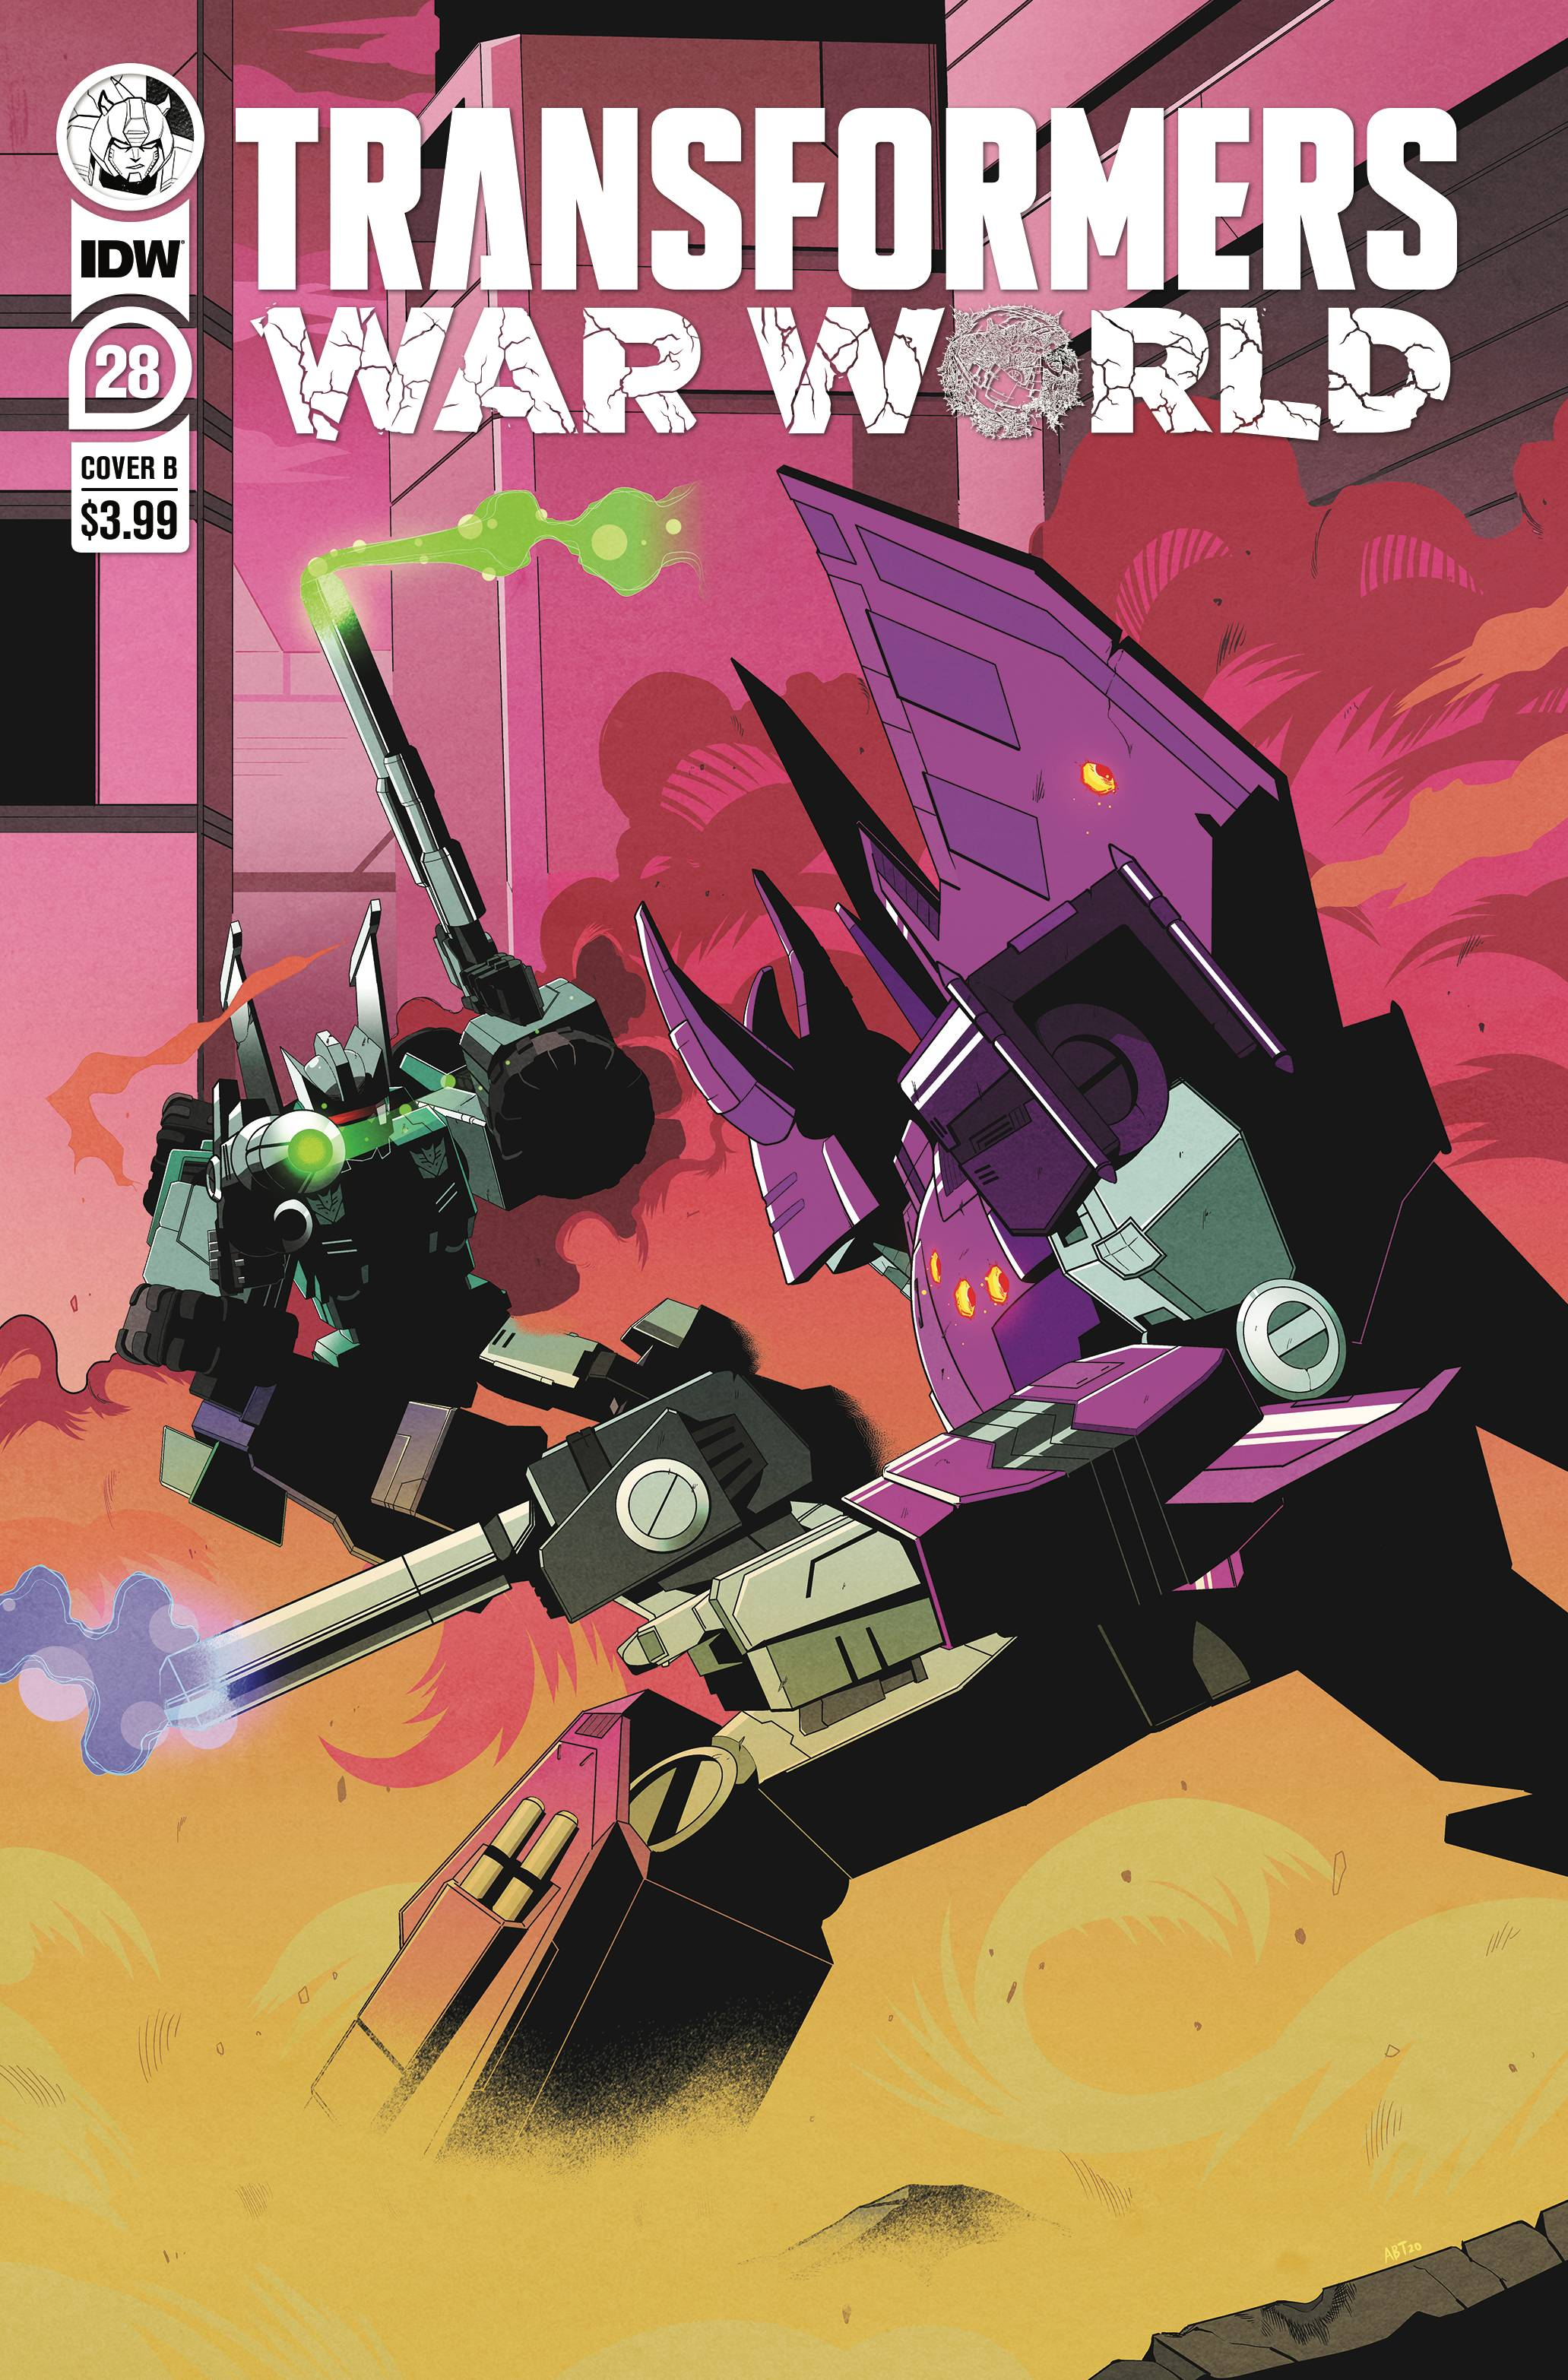 TRANSFORMERS #28 CVR B  ADAM BRYCE THOMAS